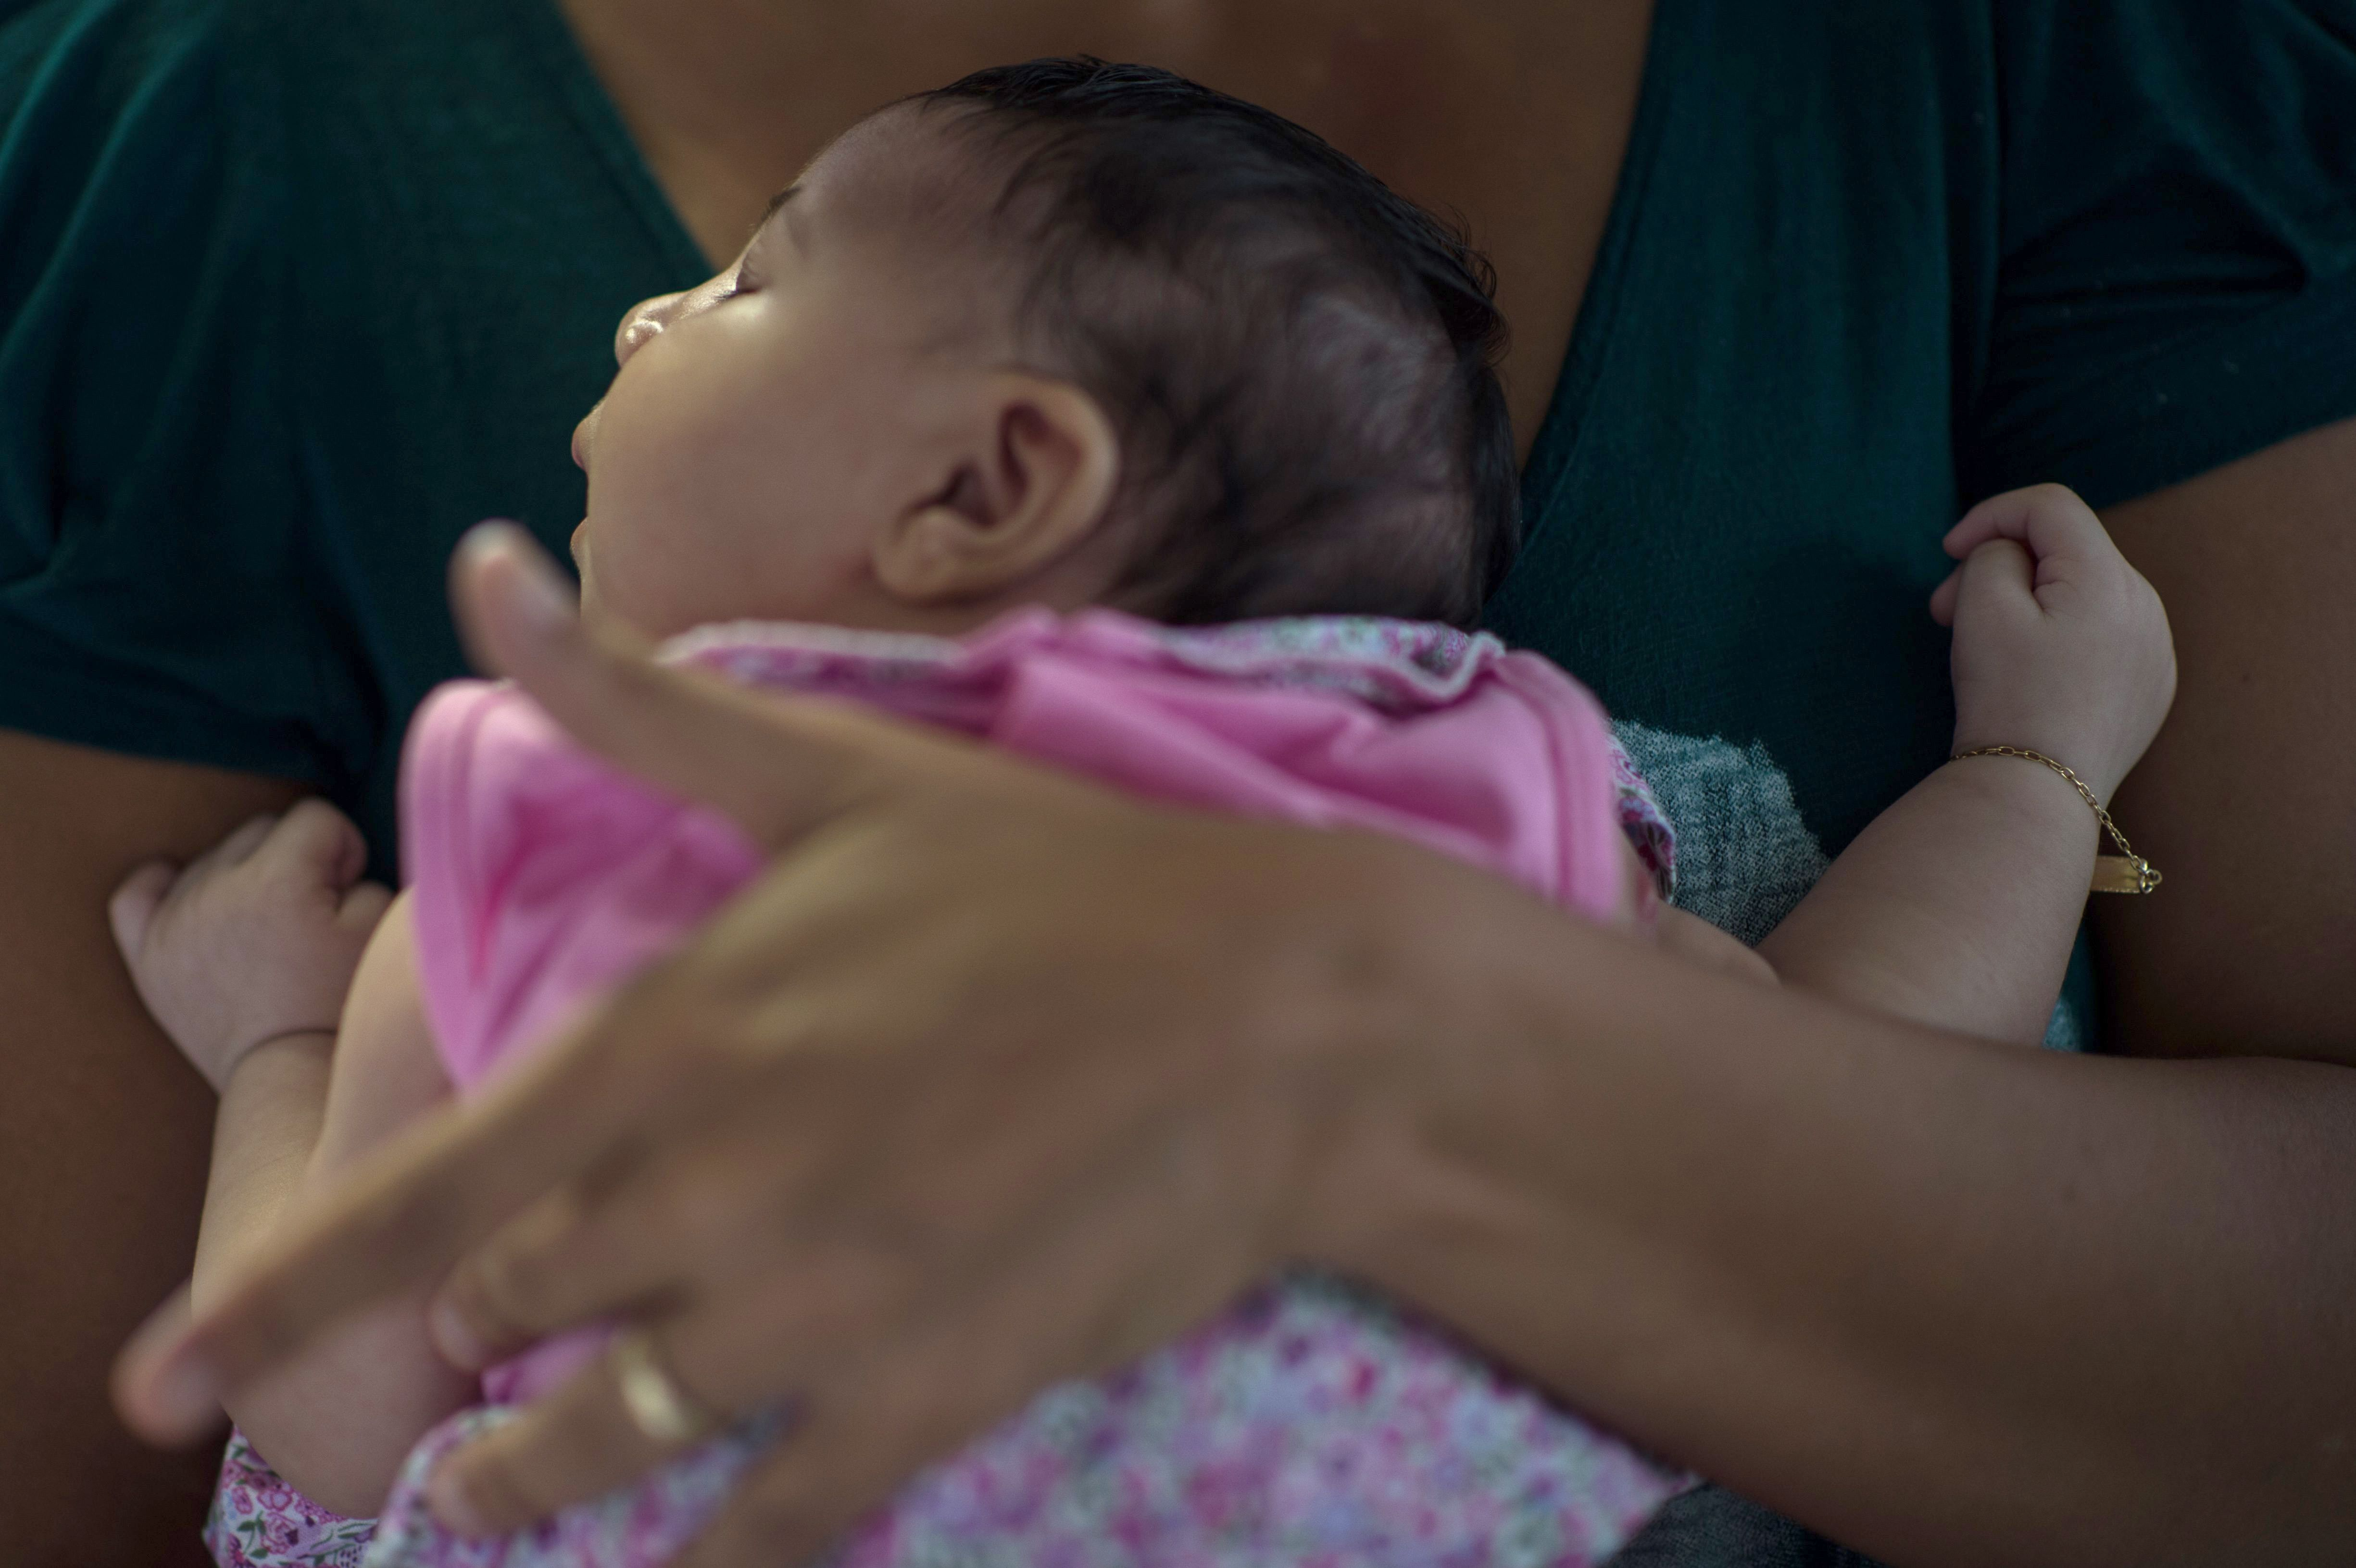 Is Microcephaly in Children Caused by the Zika Virus or by Pesticides?